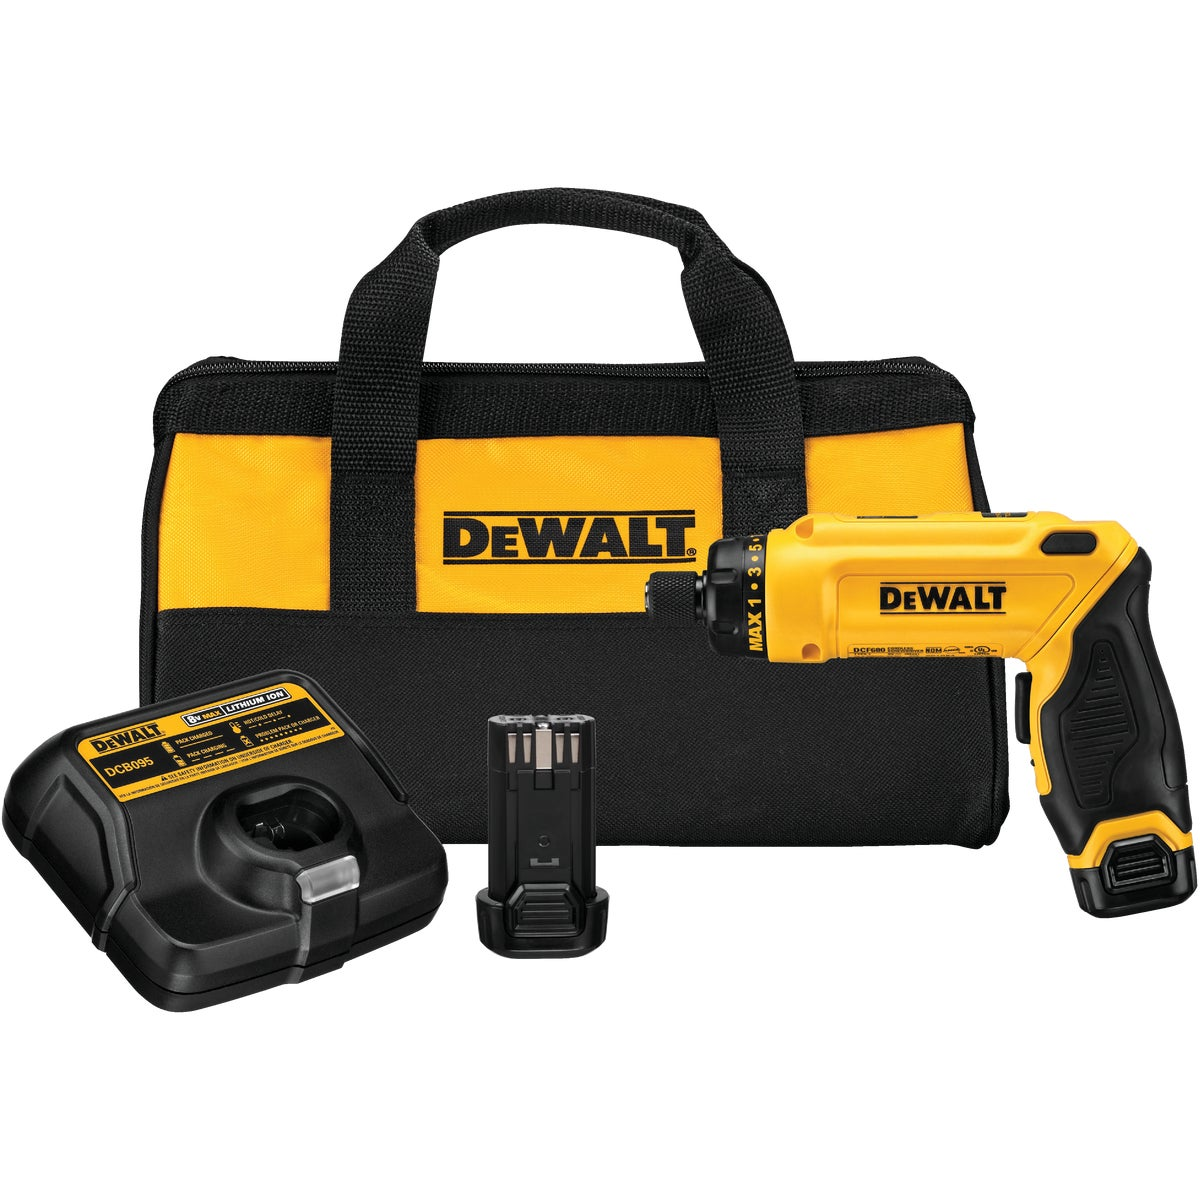 2BAT GYROSC SCREWDRIVER - DCF680N2 by DeWalt